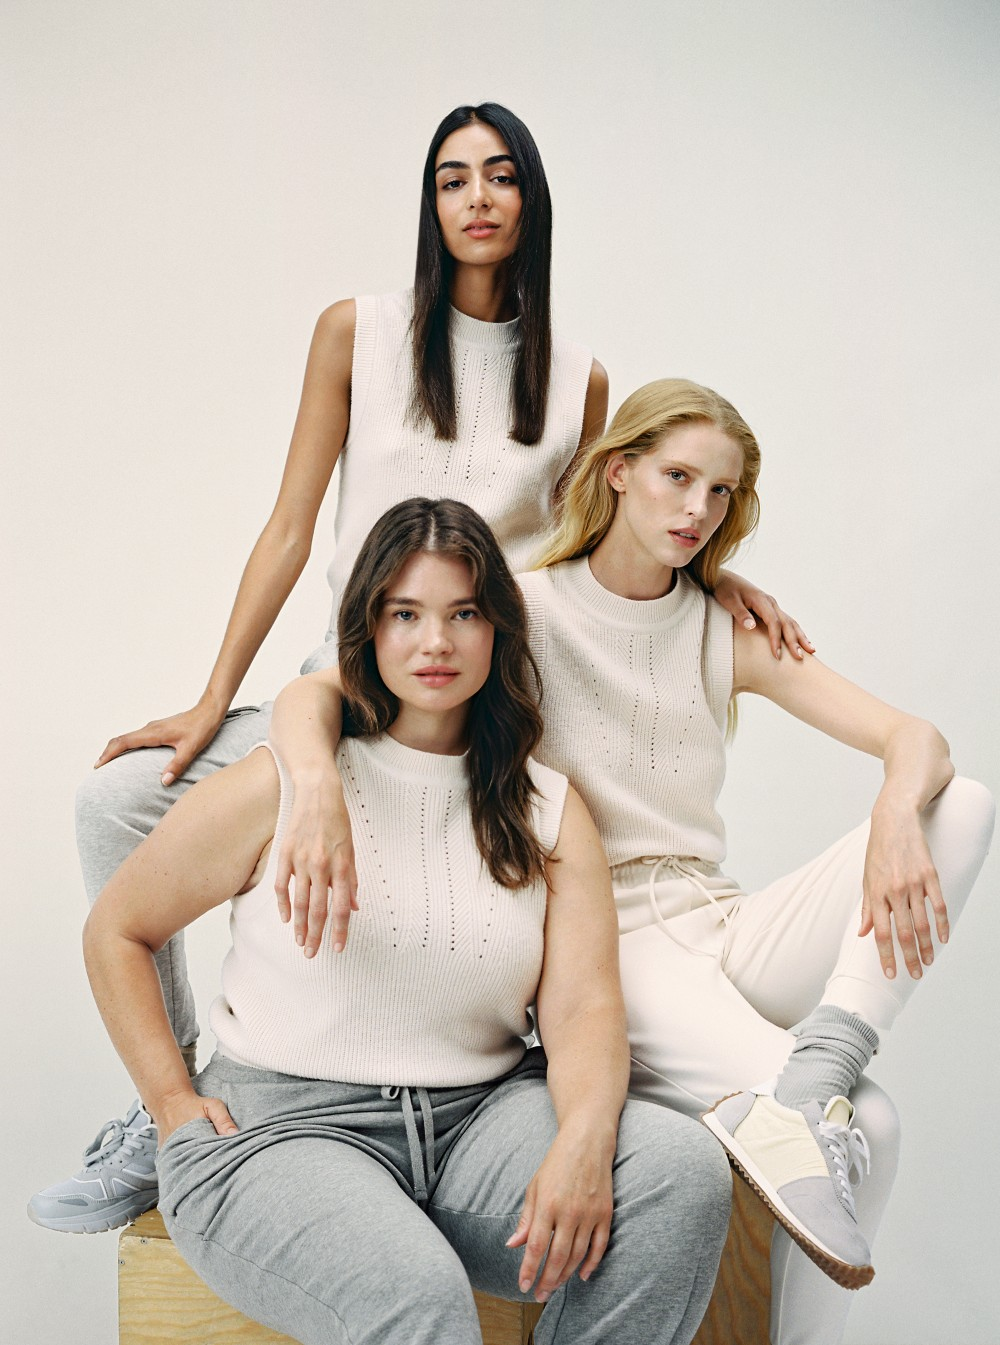 Spanish retailer Mango is going size-inclusive by integrating its Violeta by Mango plus-size line into its broader women's wear assortment.